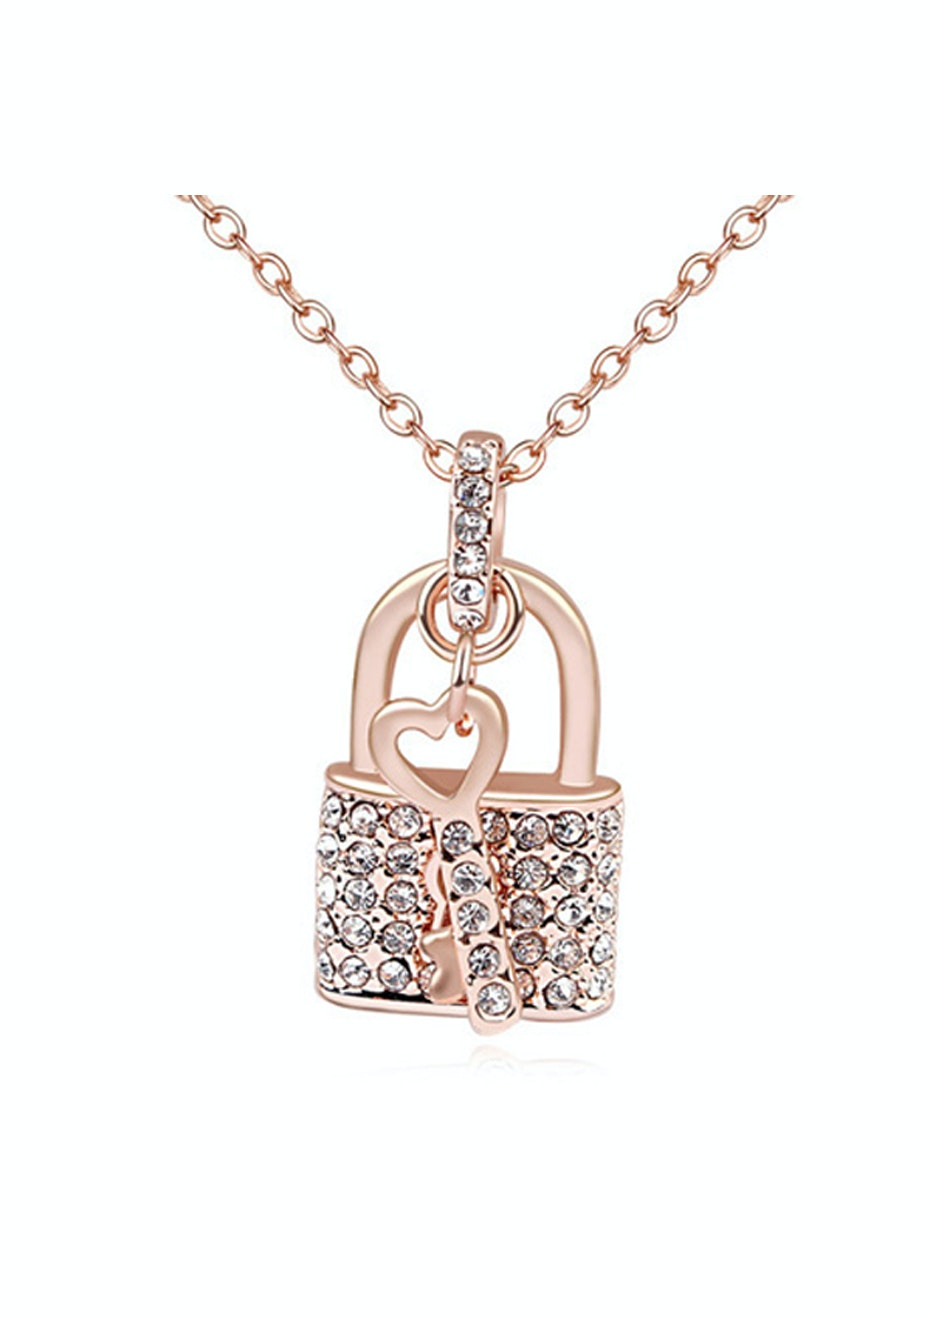 Love Lock Pendant Necklace Embellished with Crystals from Swarovski -RG